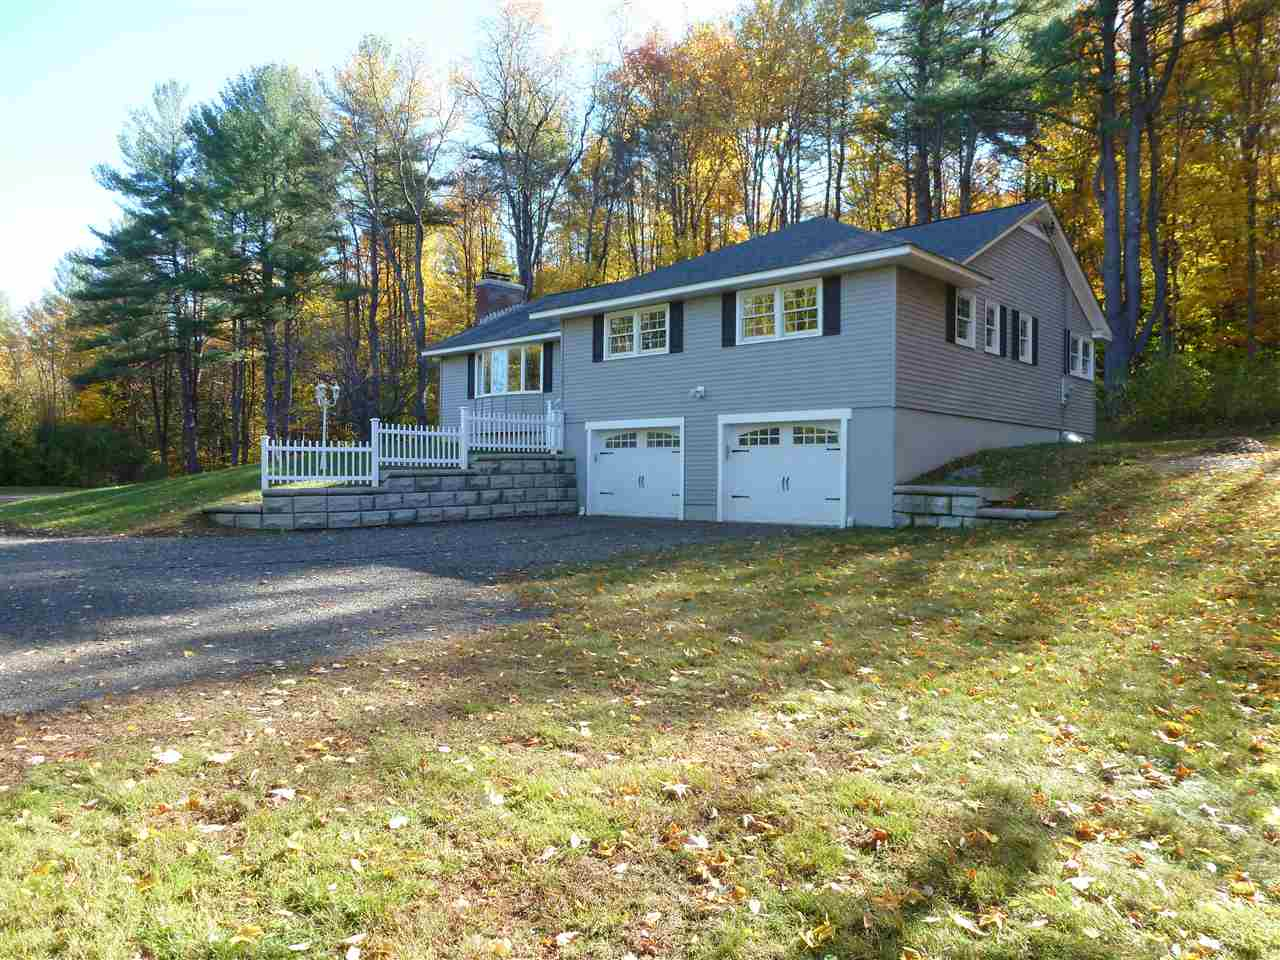 MLS 4784750: 226 Route 9, Chesterfield NH